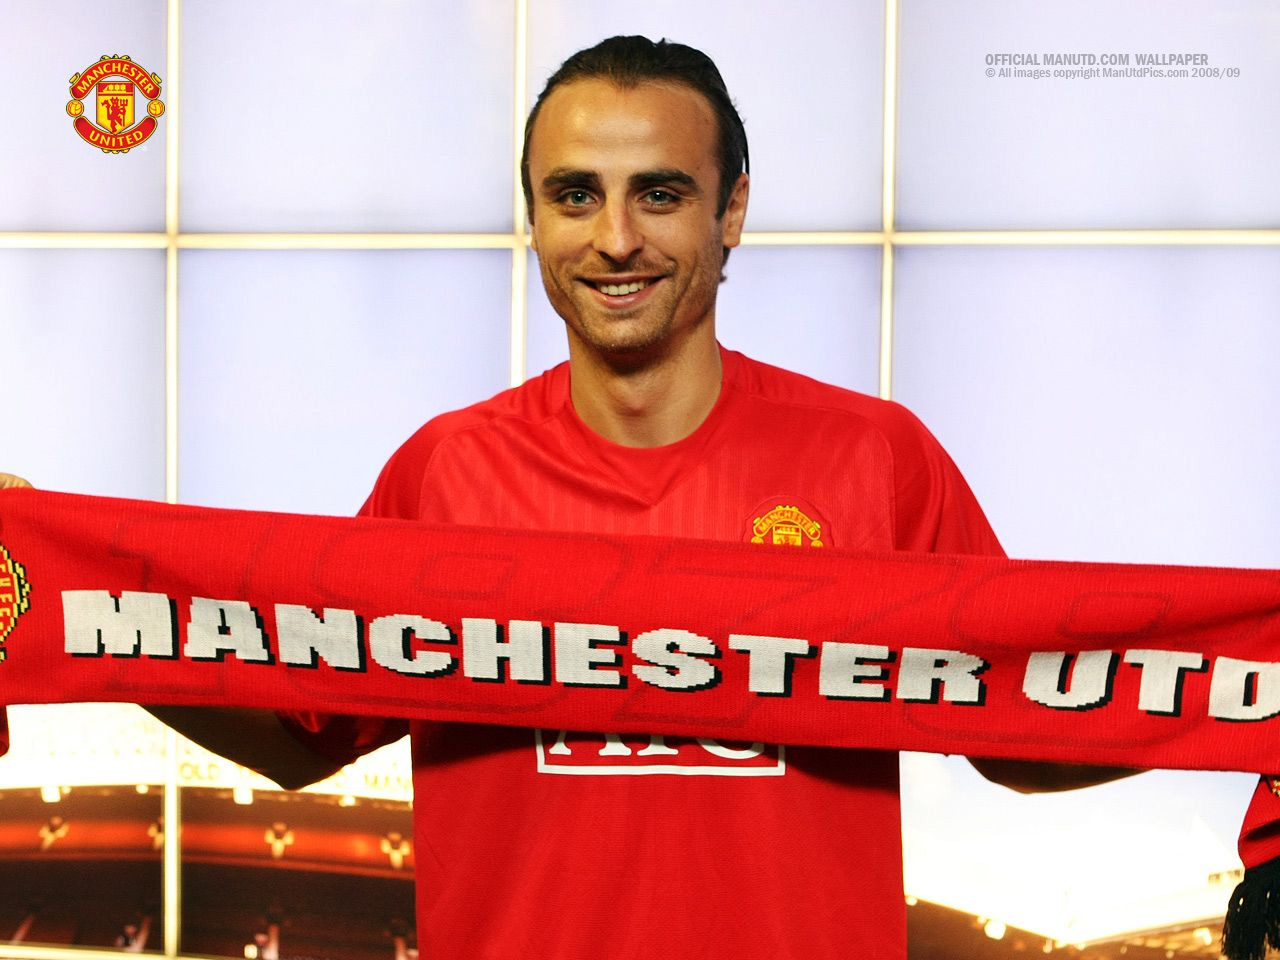 dimitiar berbatov, man united striker, bulgaria best player, berbagol, berbatov wallpaper